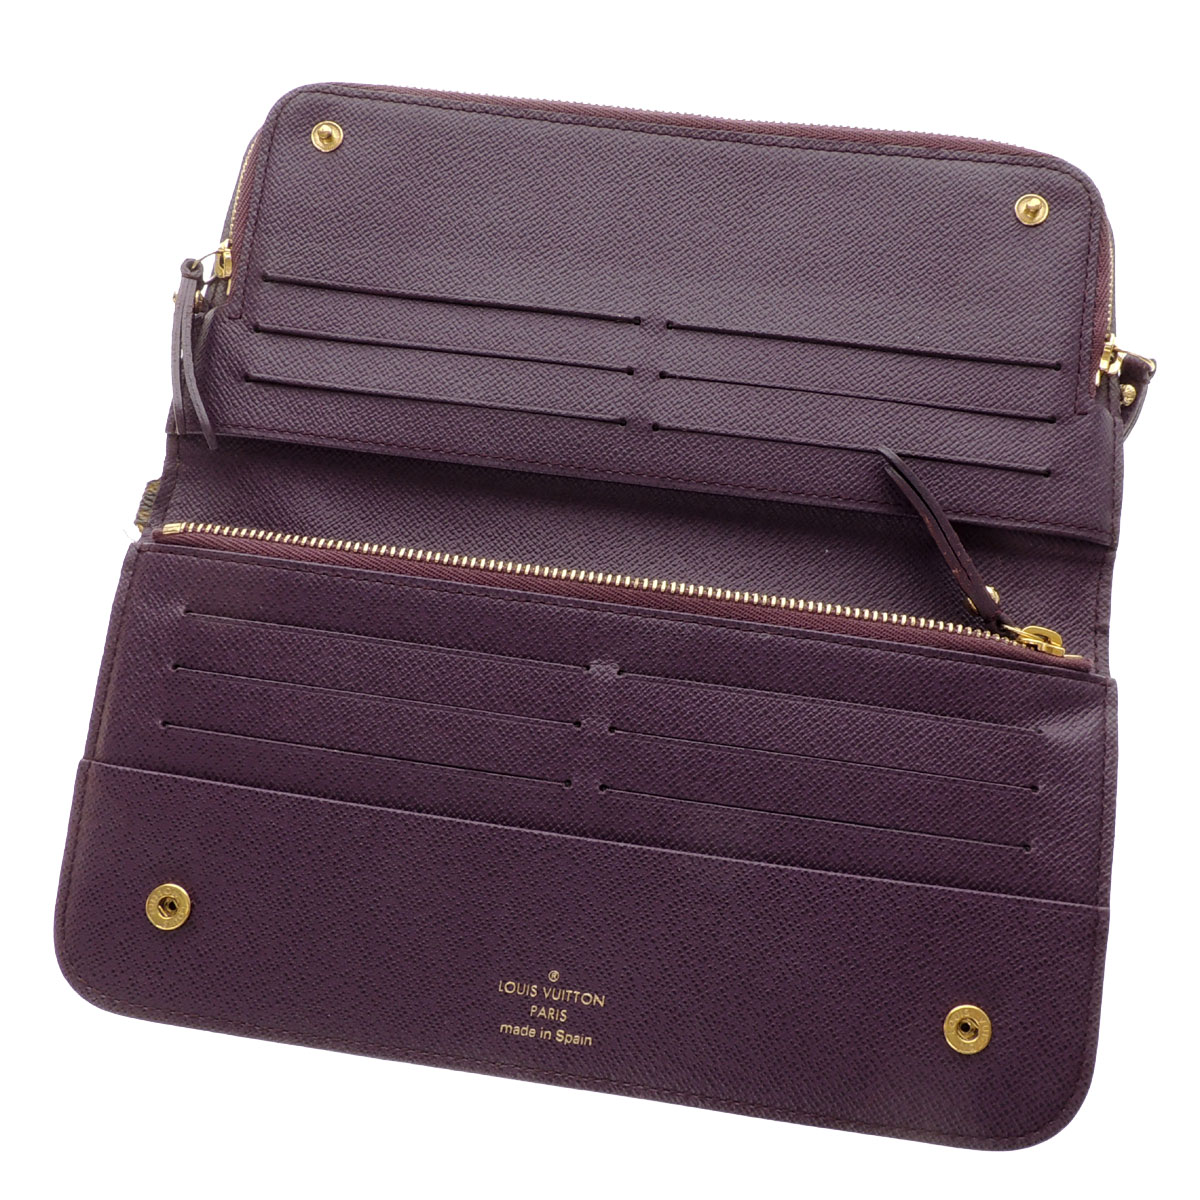 LOUIS VUITTON ポルトフォイユ アンソリット N63071 double nap long wallet (there is a coin purse) monogram canvas Lady's